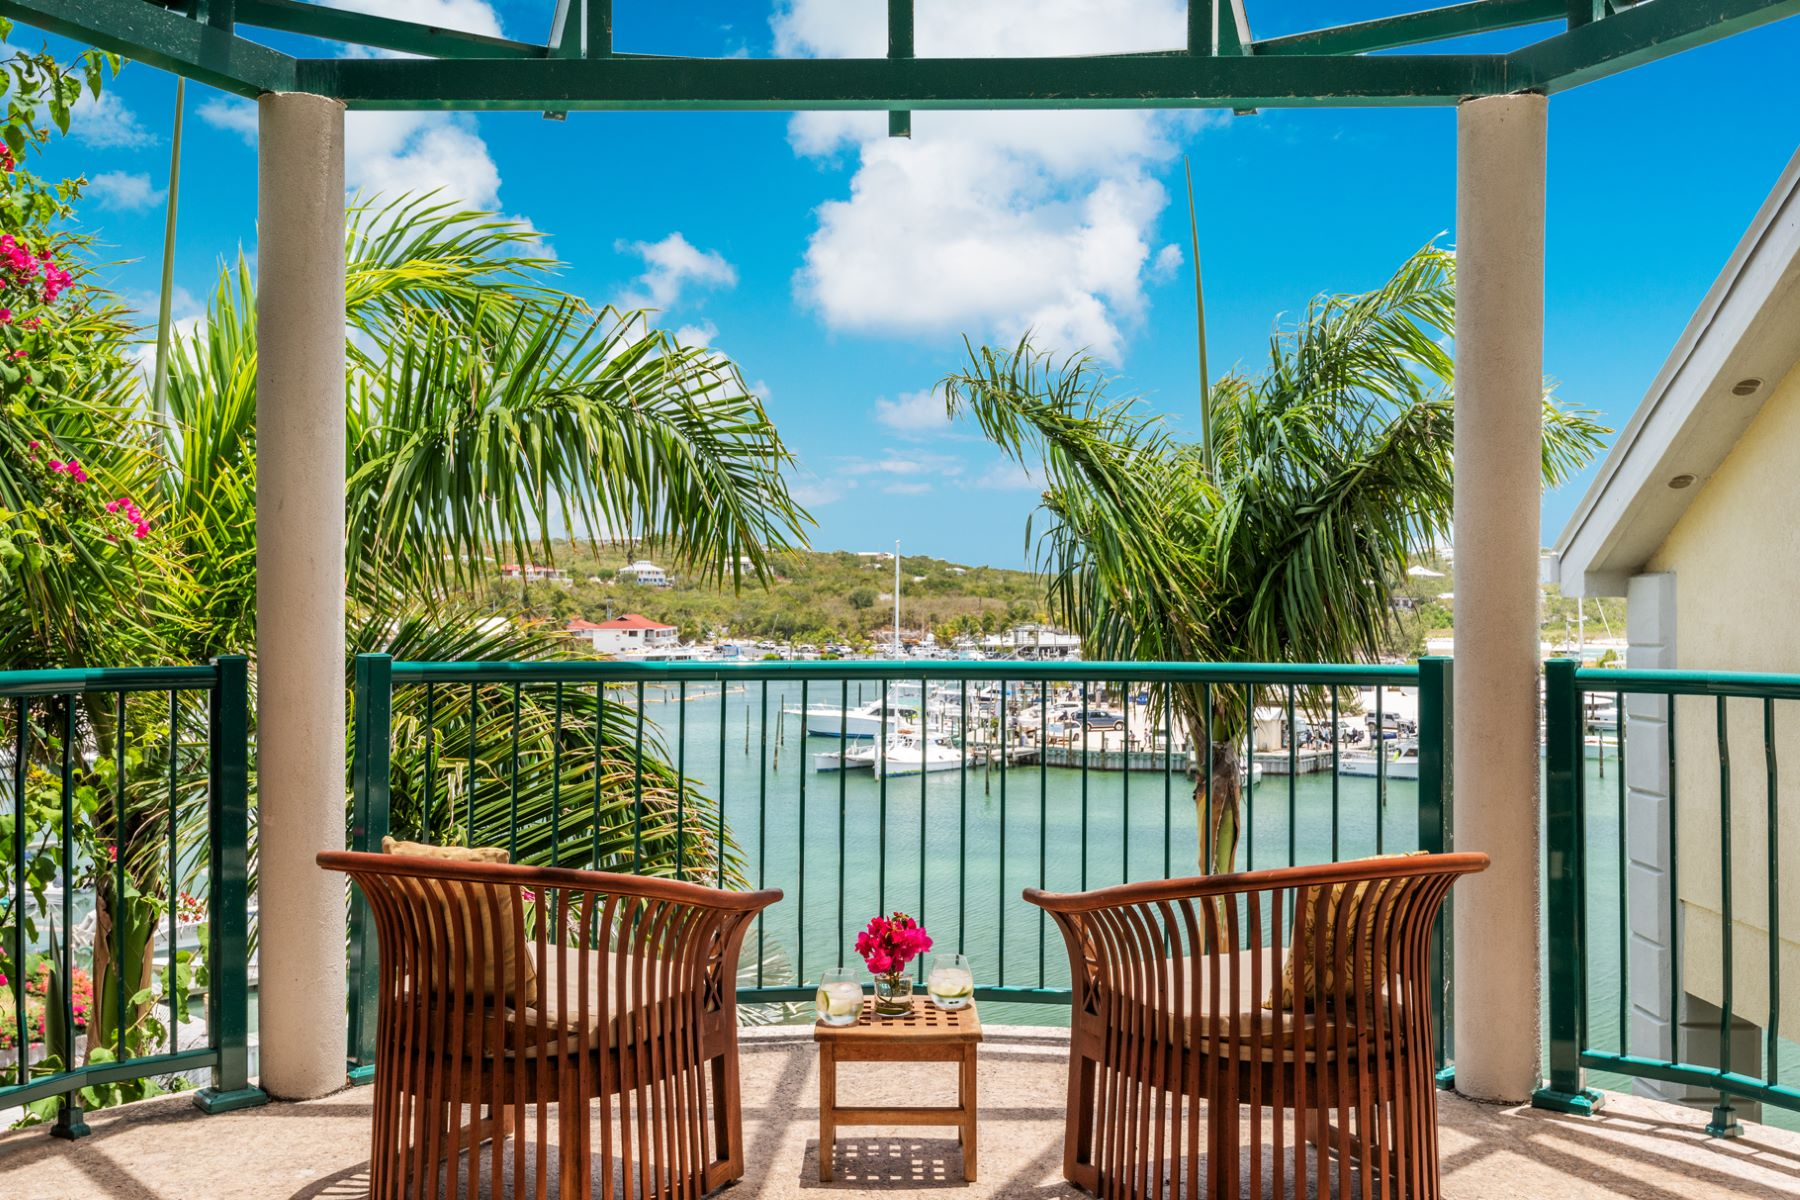 Condominium for Sale at The Yacht Club - C14 The Yacht Club, Turtle Cove, Providenciales Turks And Caicos Islands